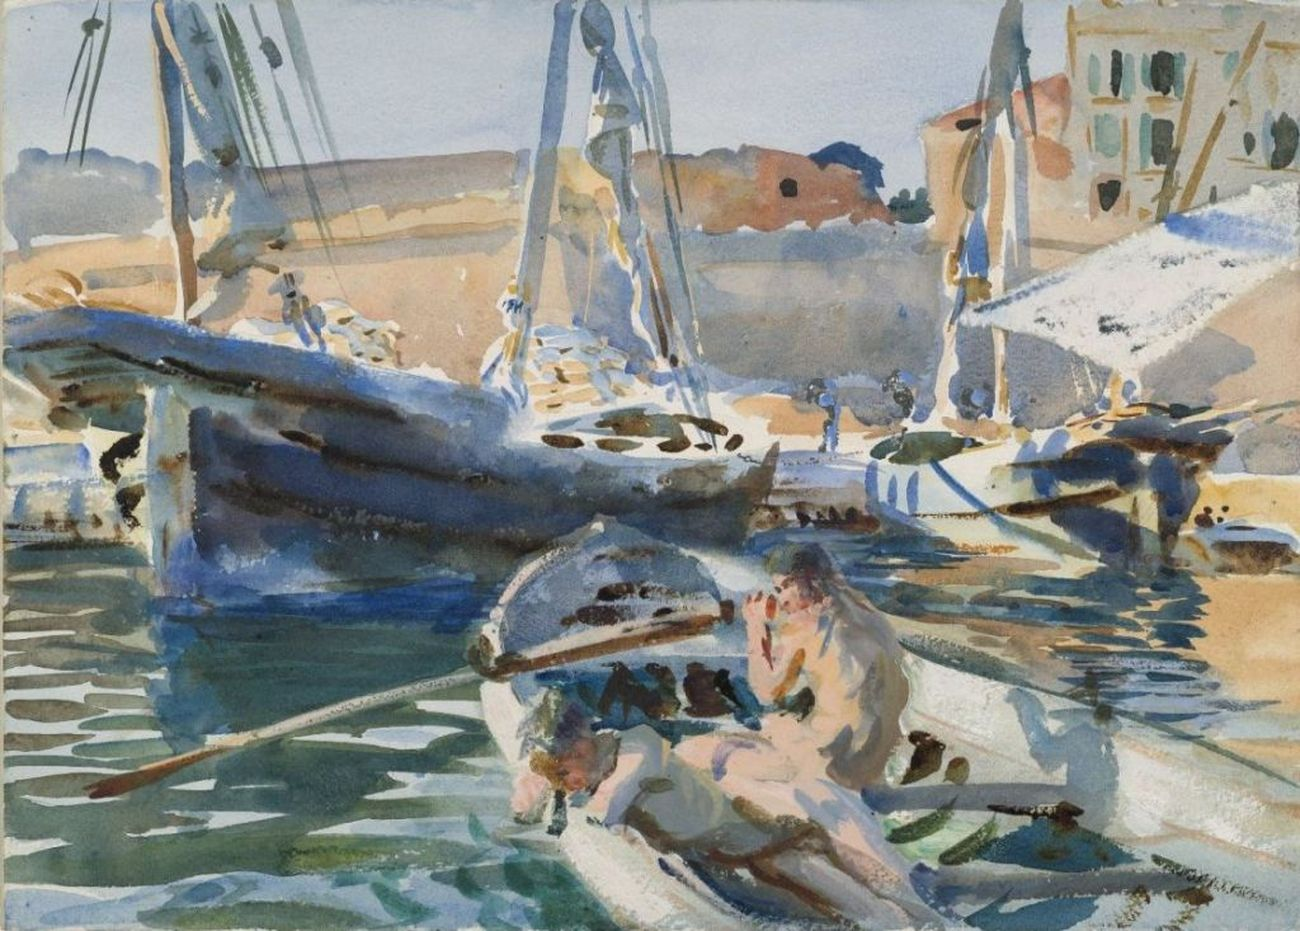 John Singer Sargent a Stoccolma | Artribune